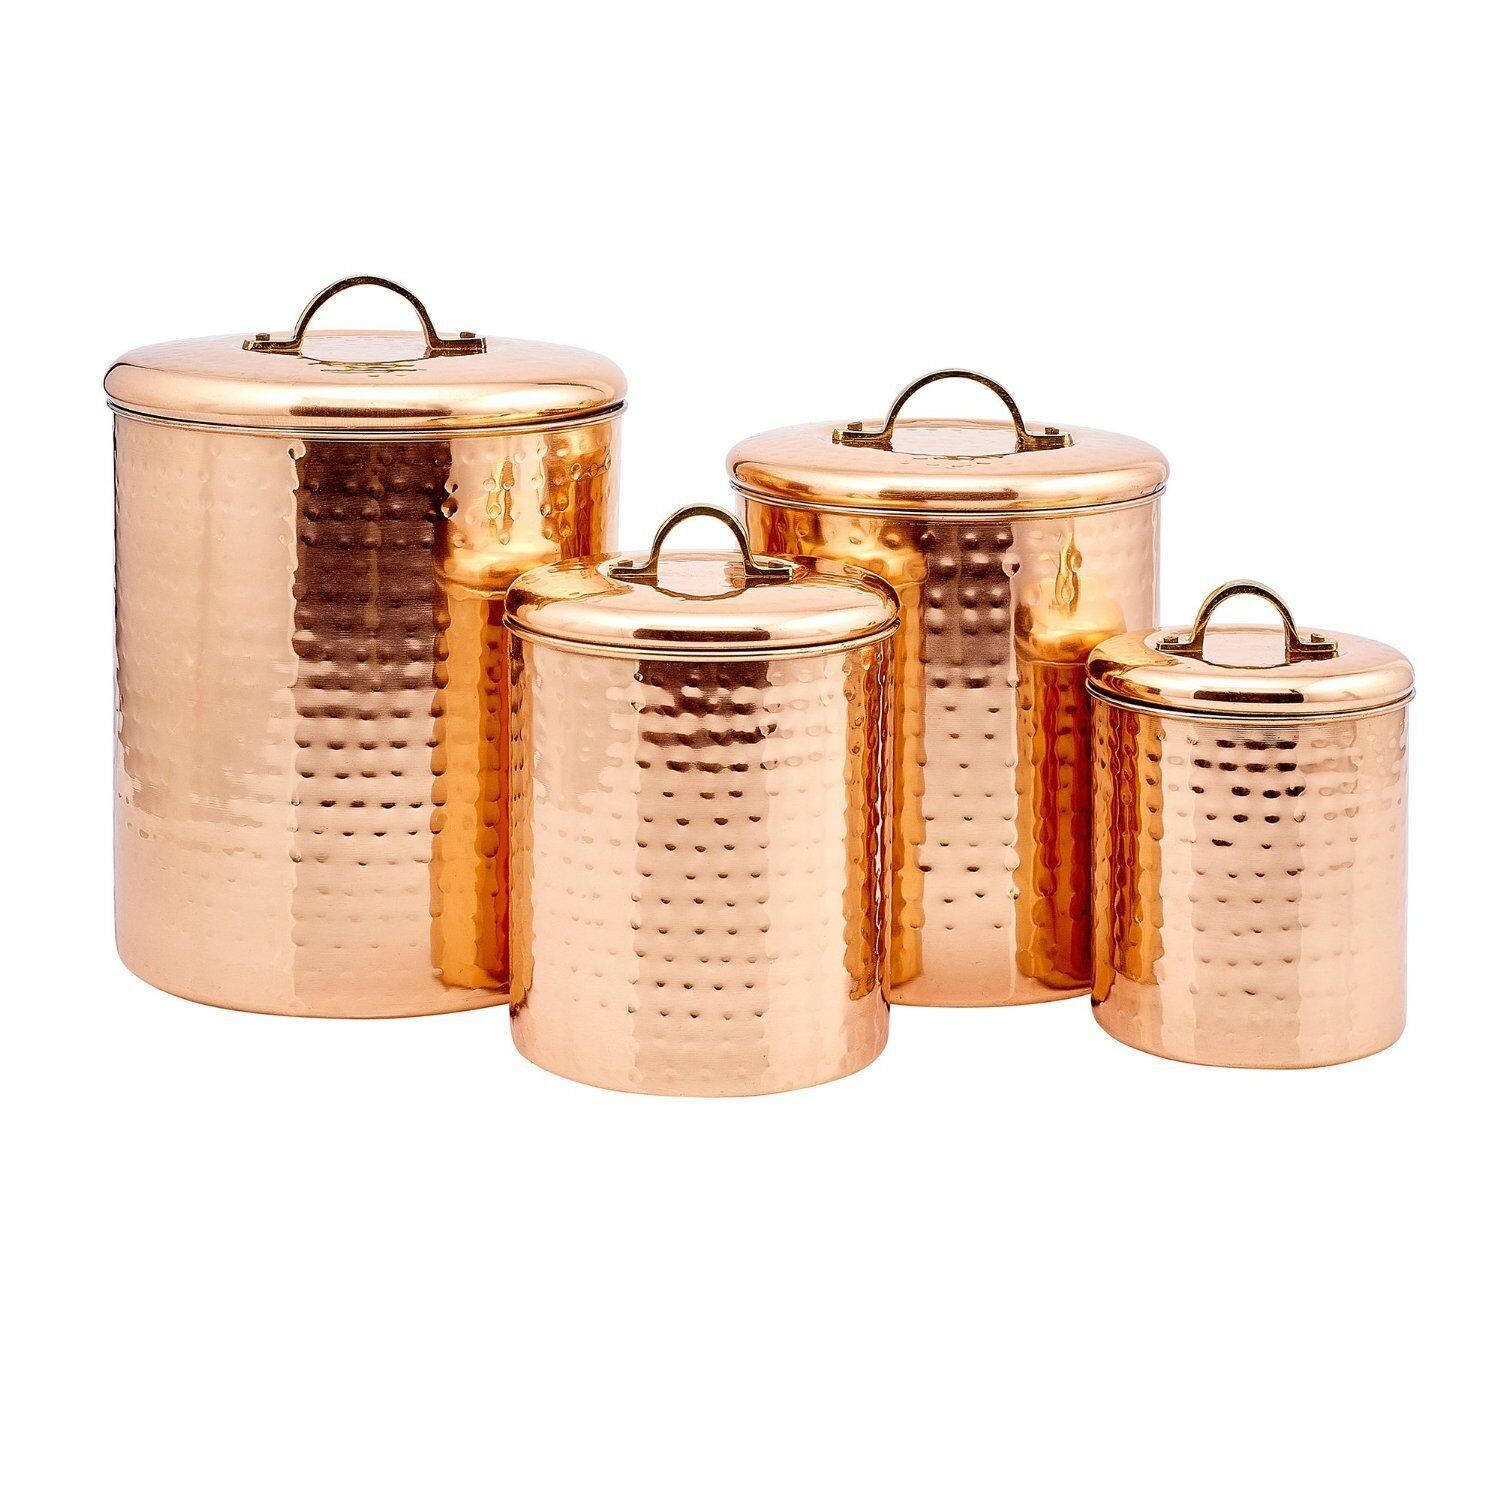 Copper Kitchen Canisters Set Containers Stainless Steel Country Rustic Metal NEW